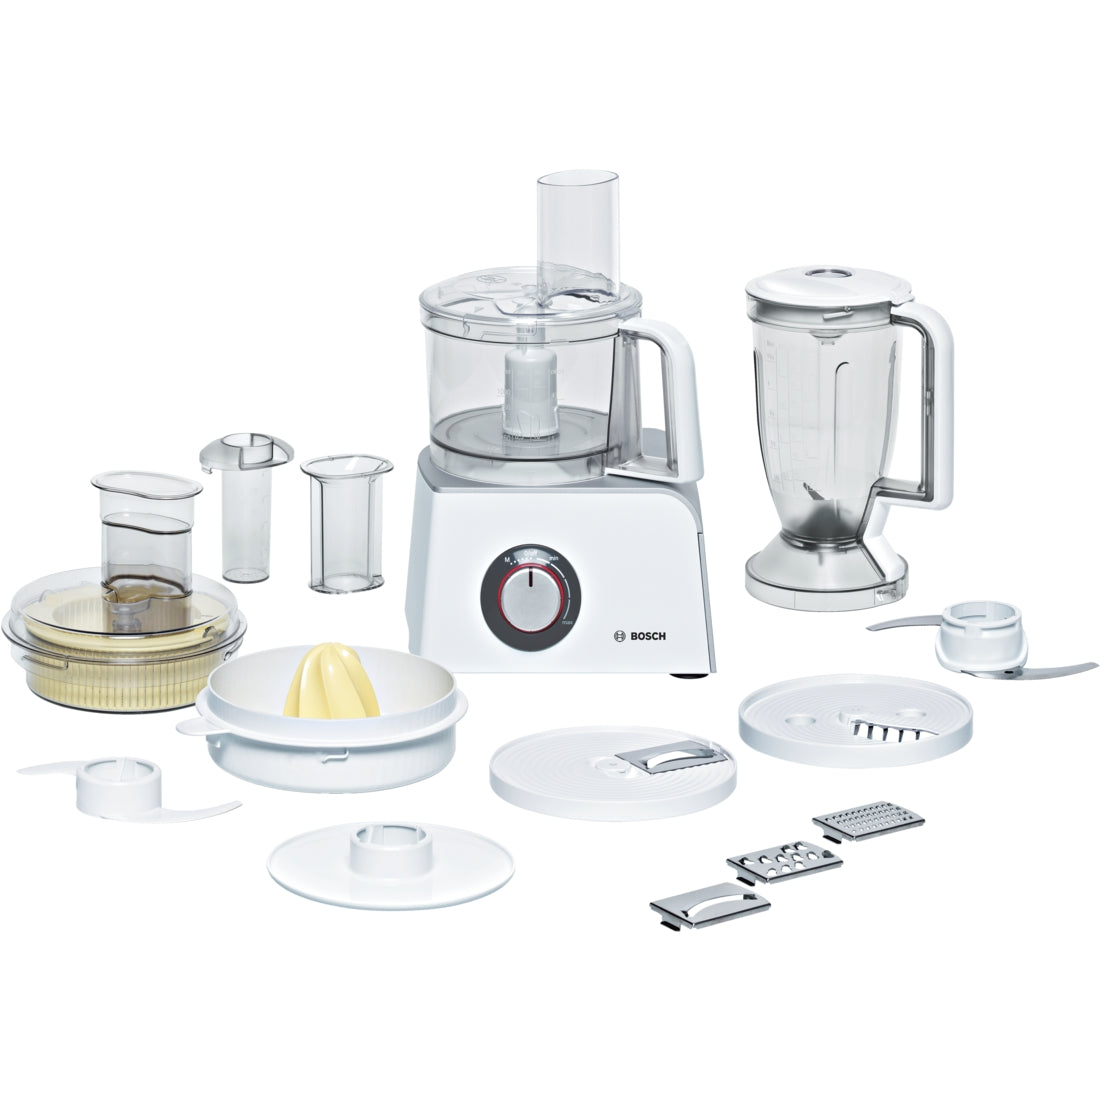 Bosch MCM4200 Food Processor Styline